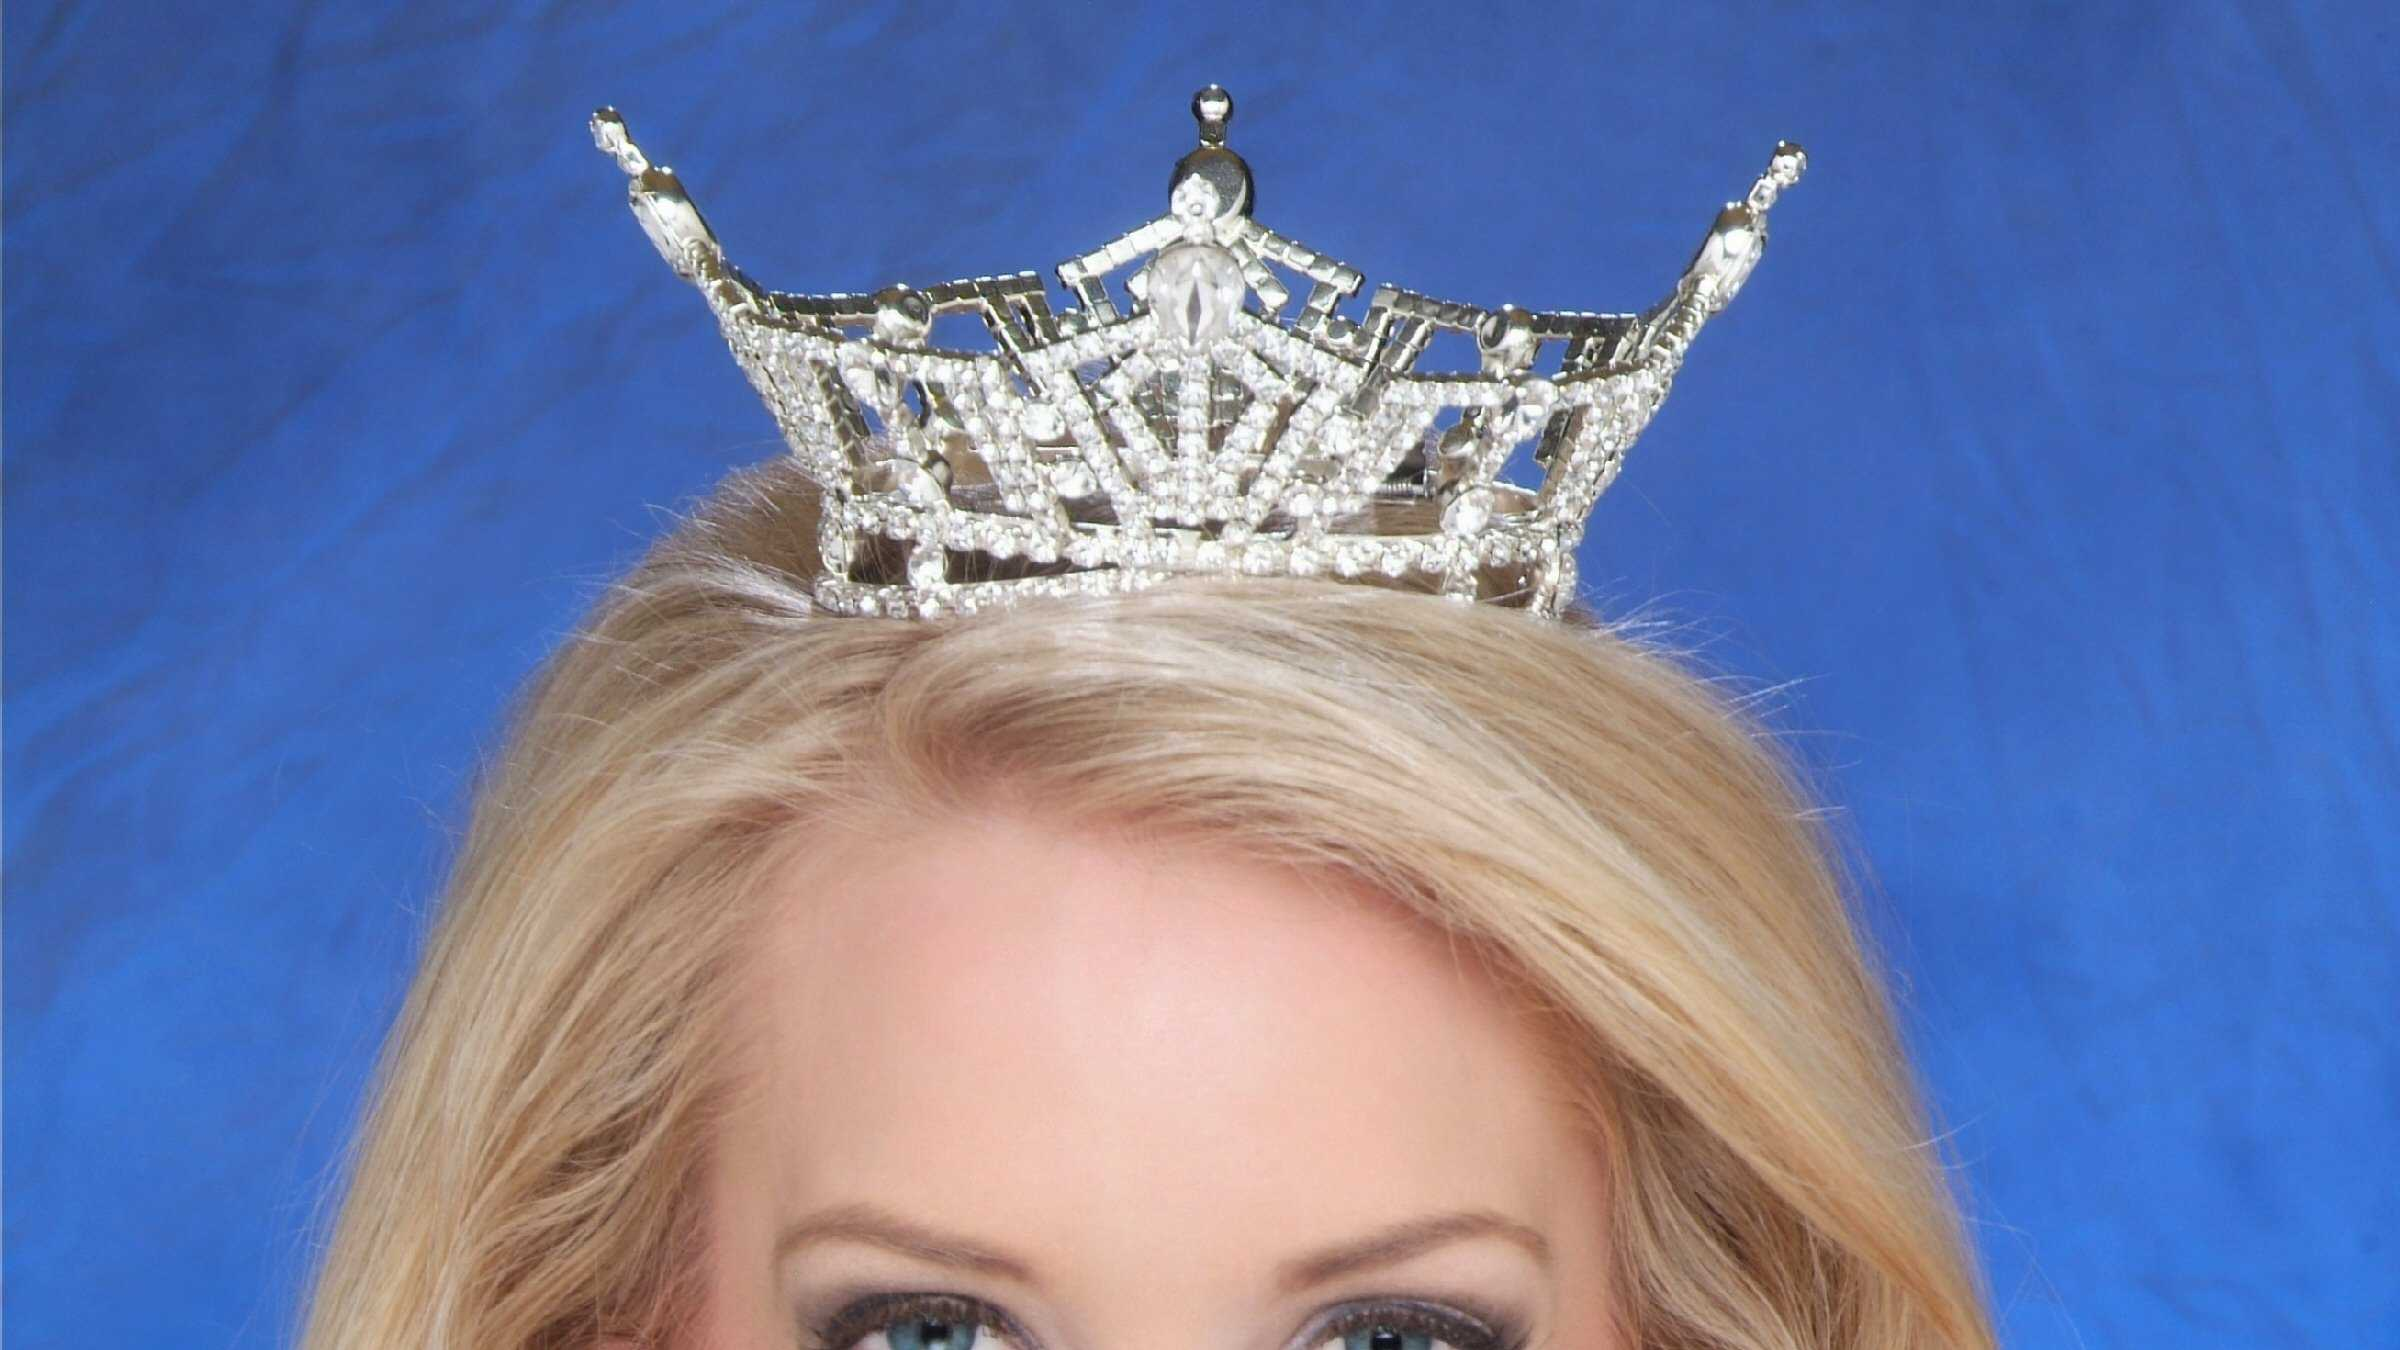 Chelsea Rick is now preparing to compete in the Miss America pageant on Sept. 15, which will air live on 16 WAPT.